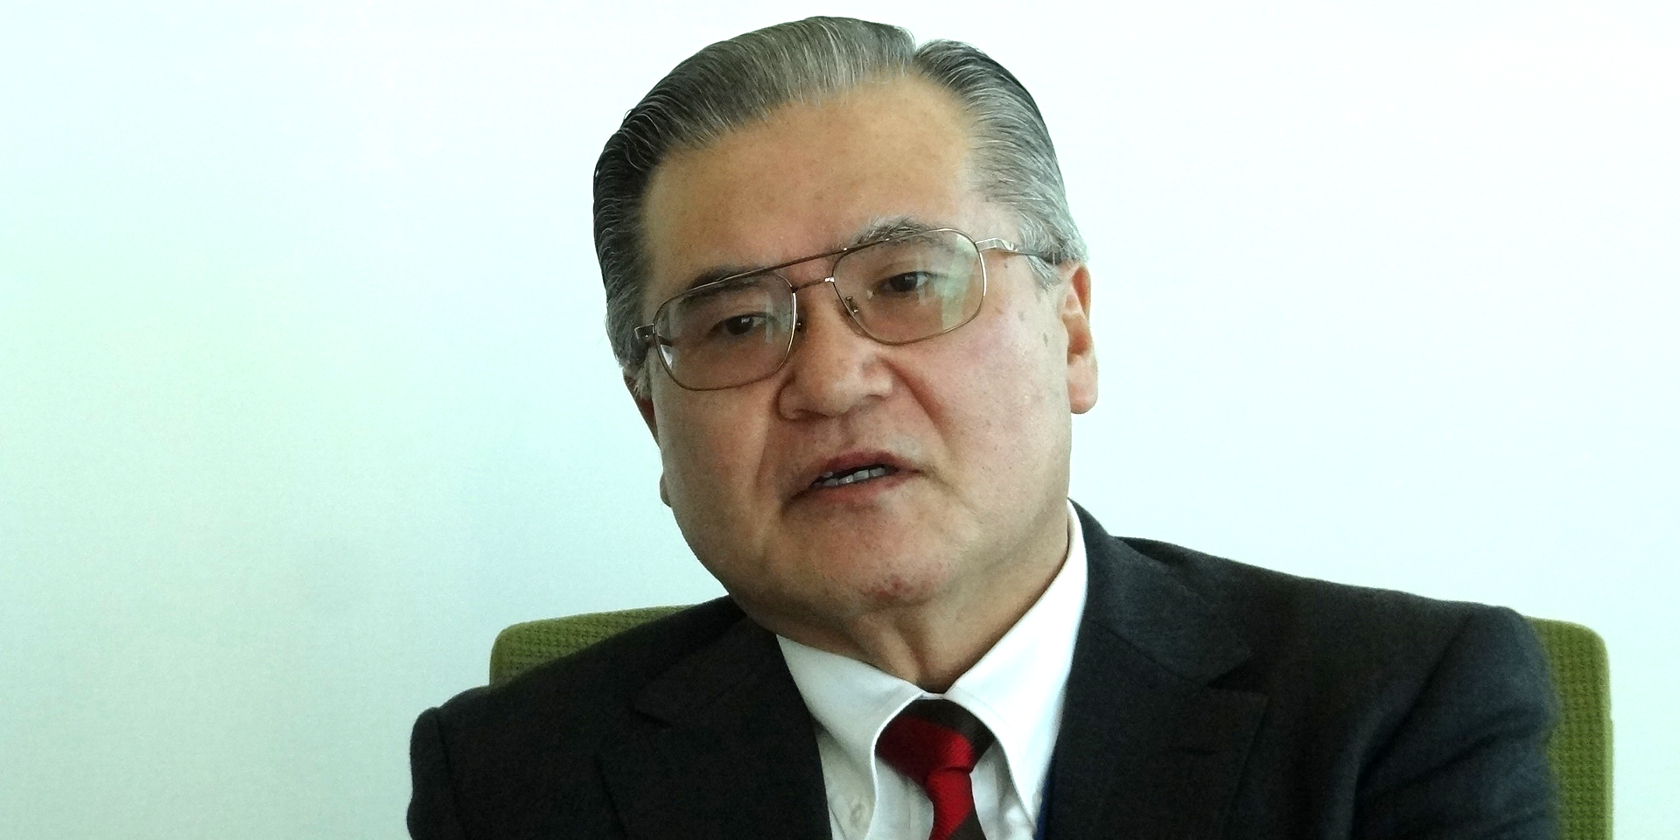 Interview: Japan Polyethylene President Youichi Fukawa Talks Growth Strategy, Future Investments